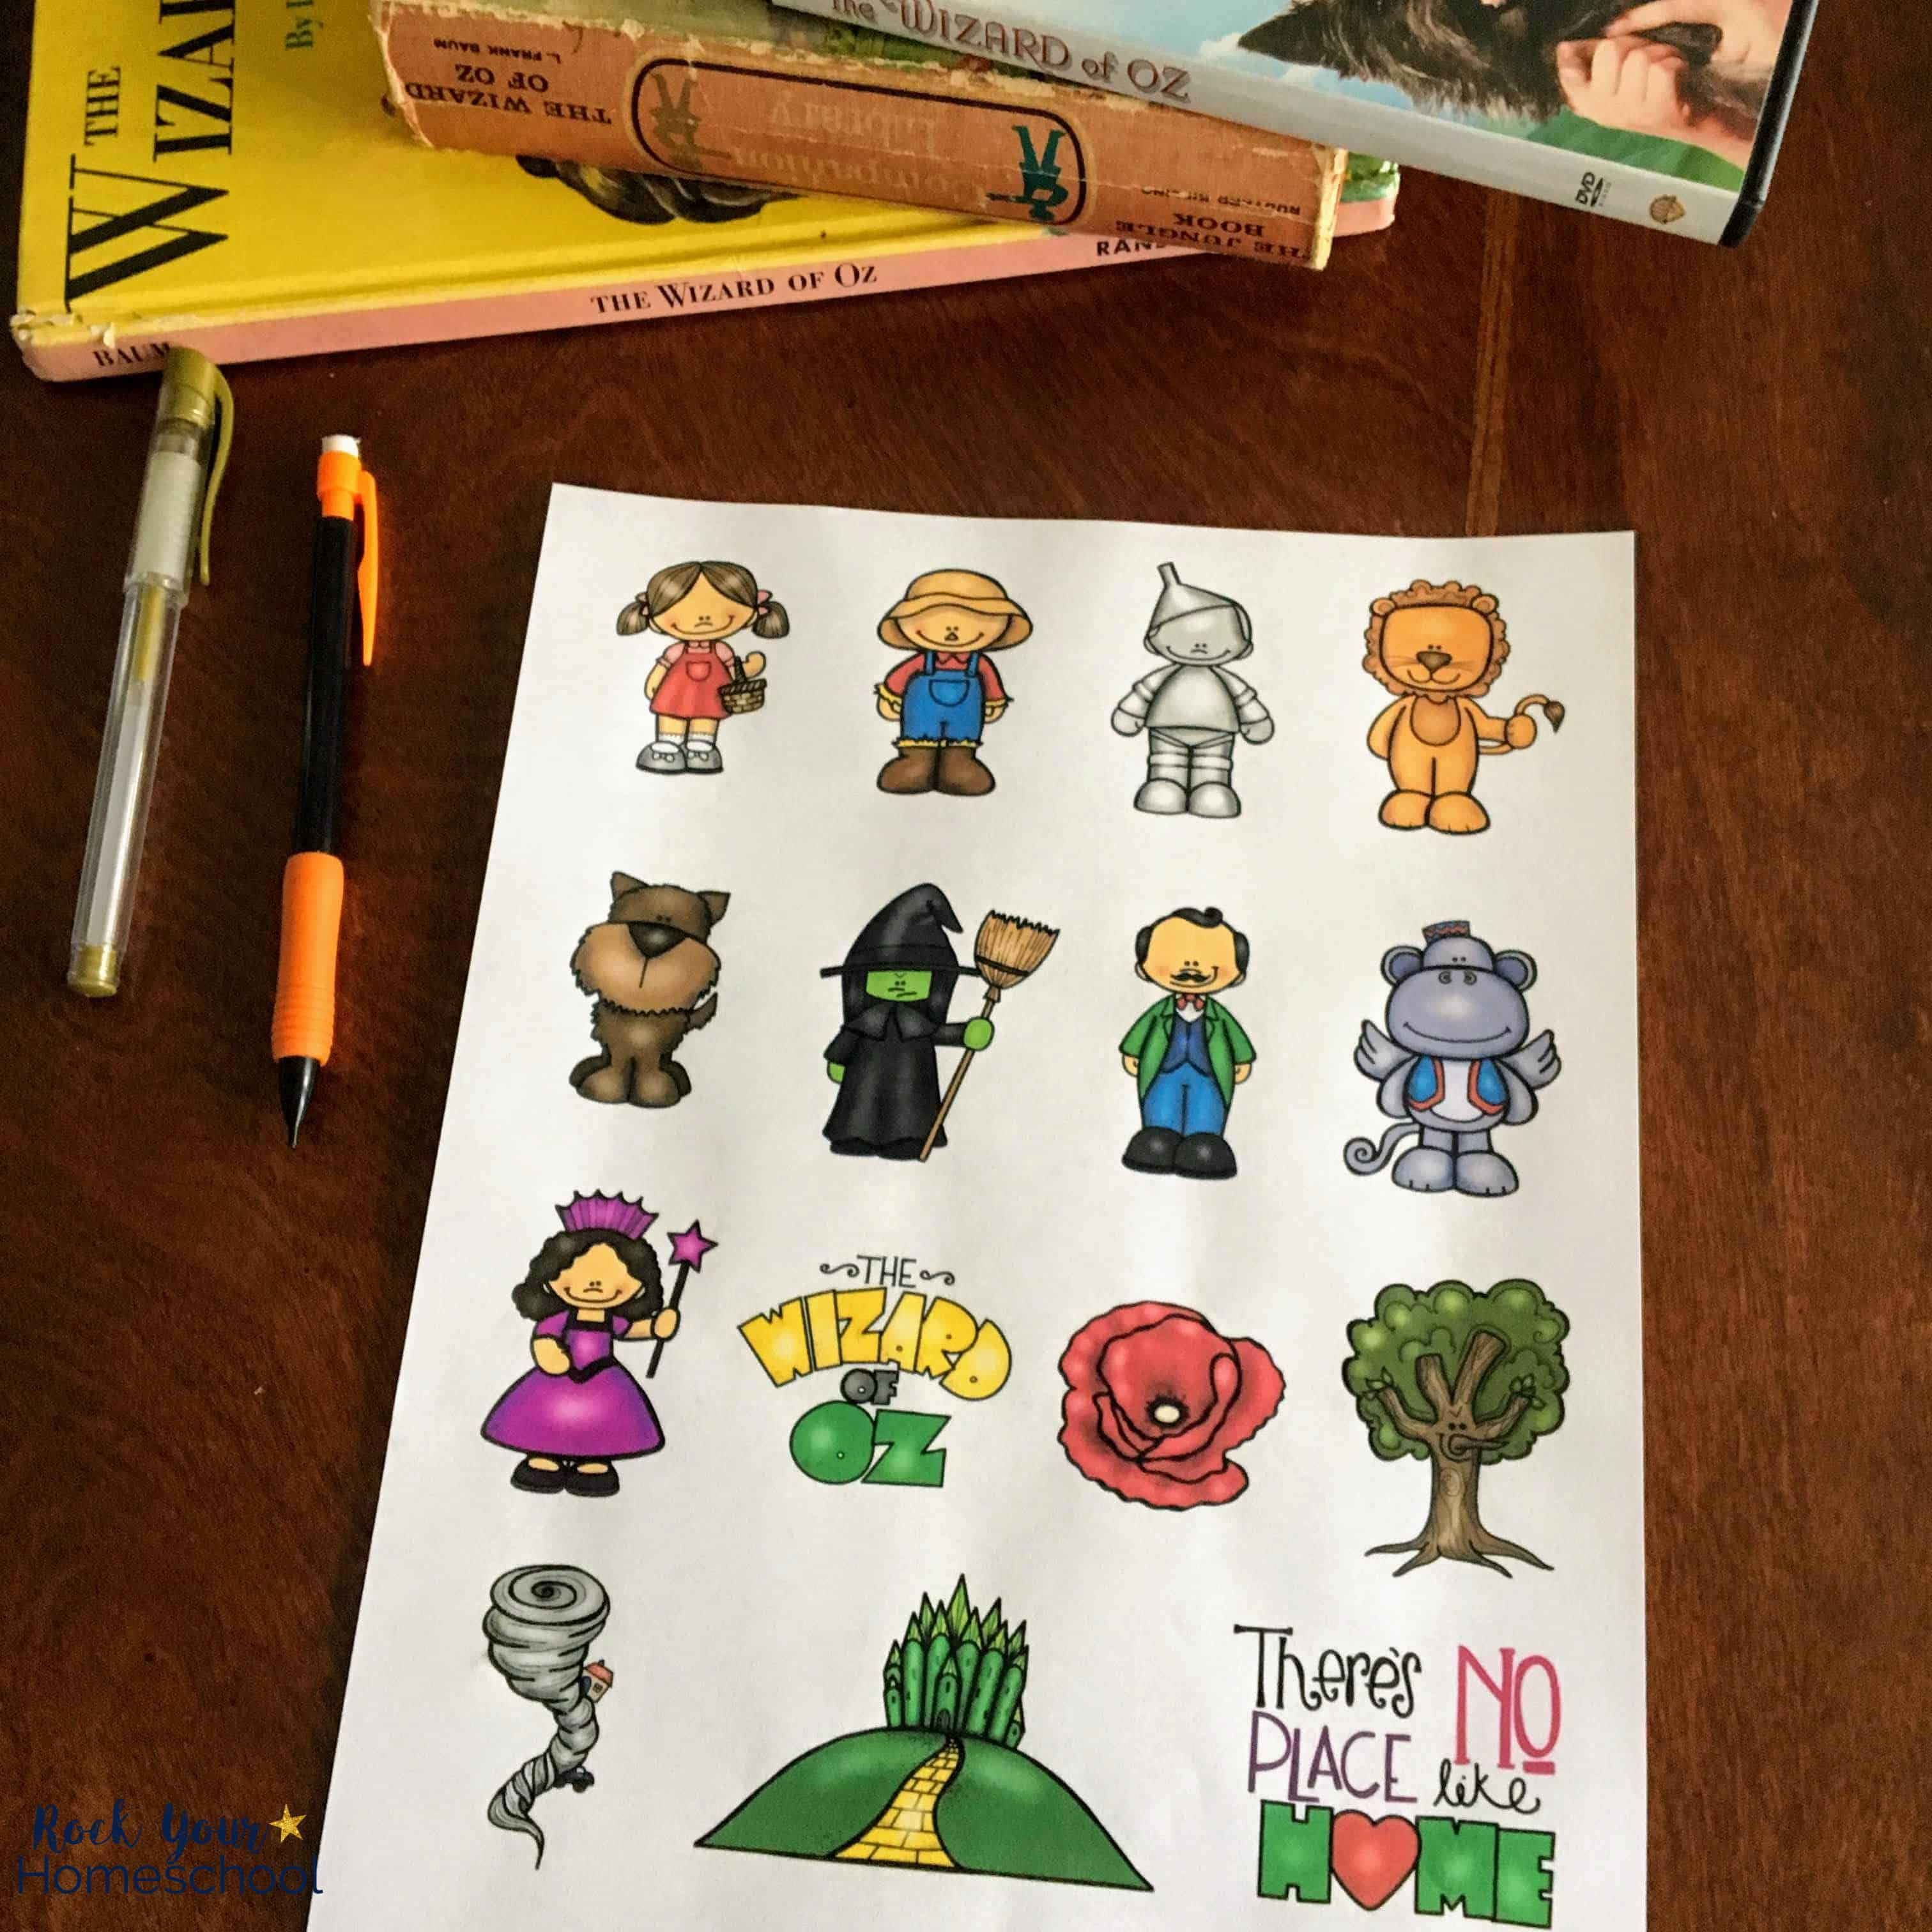 You can use these free printable characters as delightful storytime props for Wizard of Oz Learning Fun.